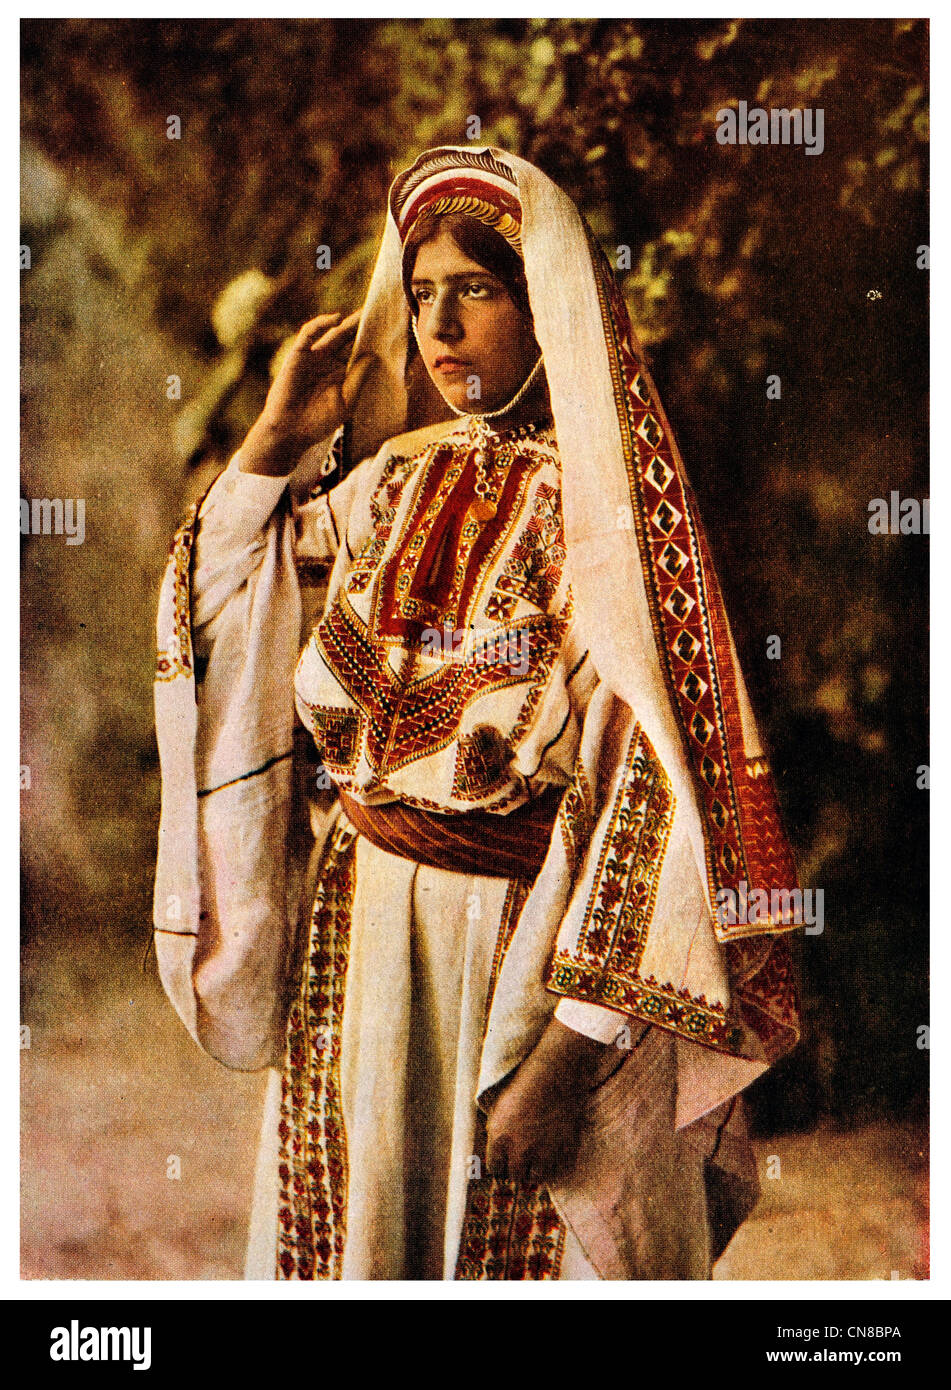 First published 1914  Palestine Bride - Stock Image